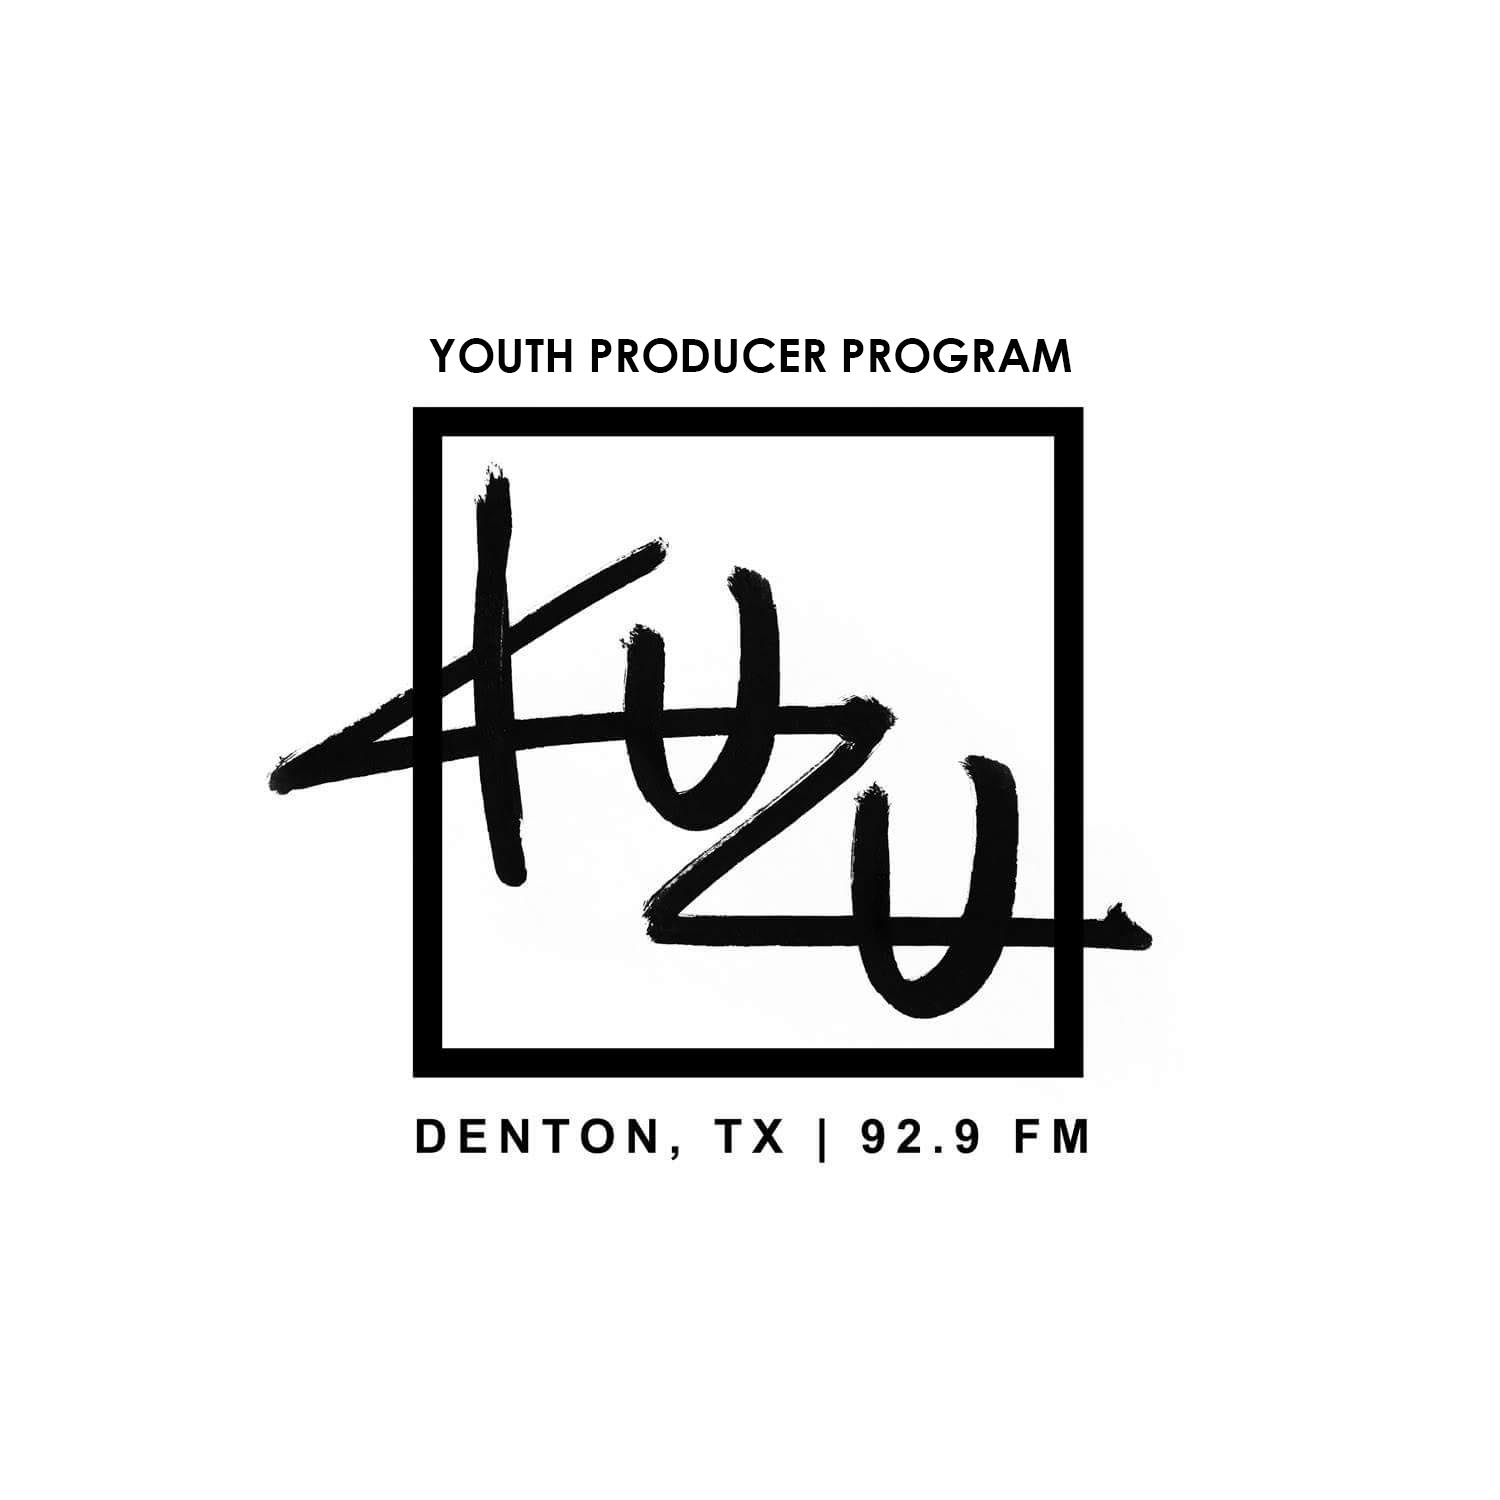 Producers under the age of 18 join KUZU's NEW Youth Producer Program. Y.P.P. offers hands-on education in producing & hosting programs with the intention of honoring youth perspectives and building 21st century skills for the community's future.Youth Producers go through the same selection process as all other volunteer producers. Parents are required to attend meetings and training sessions with their children.